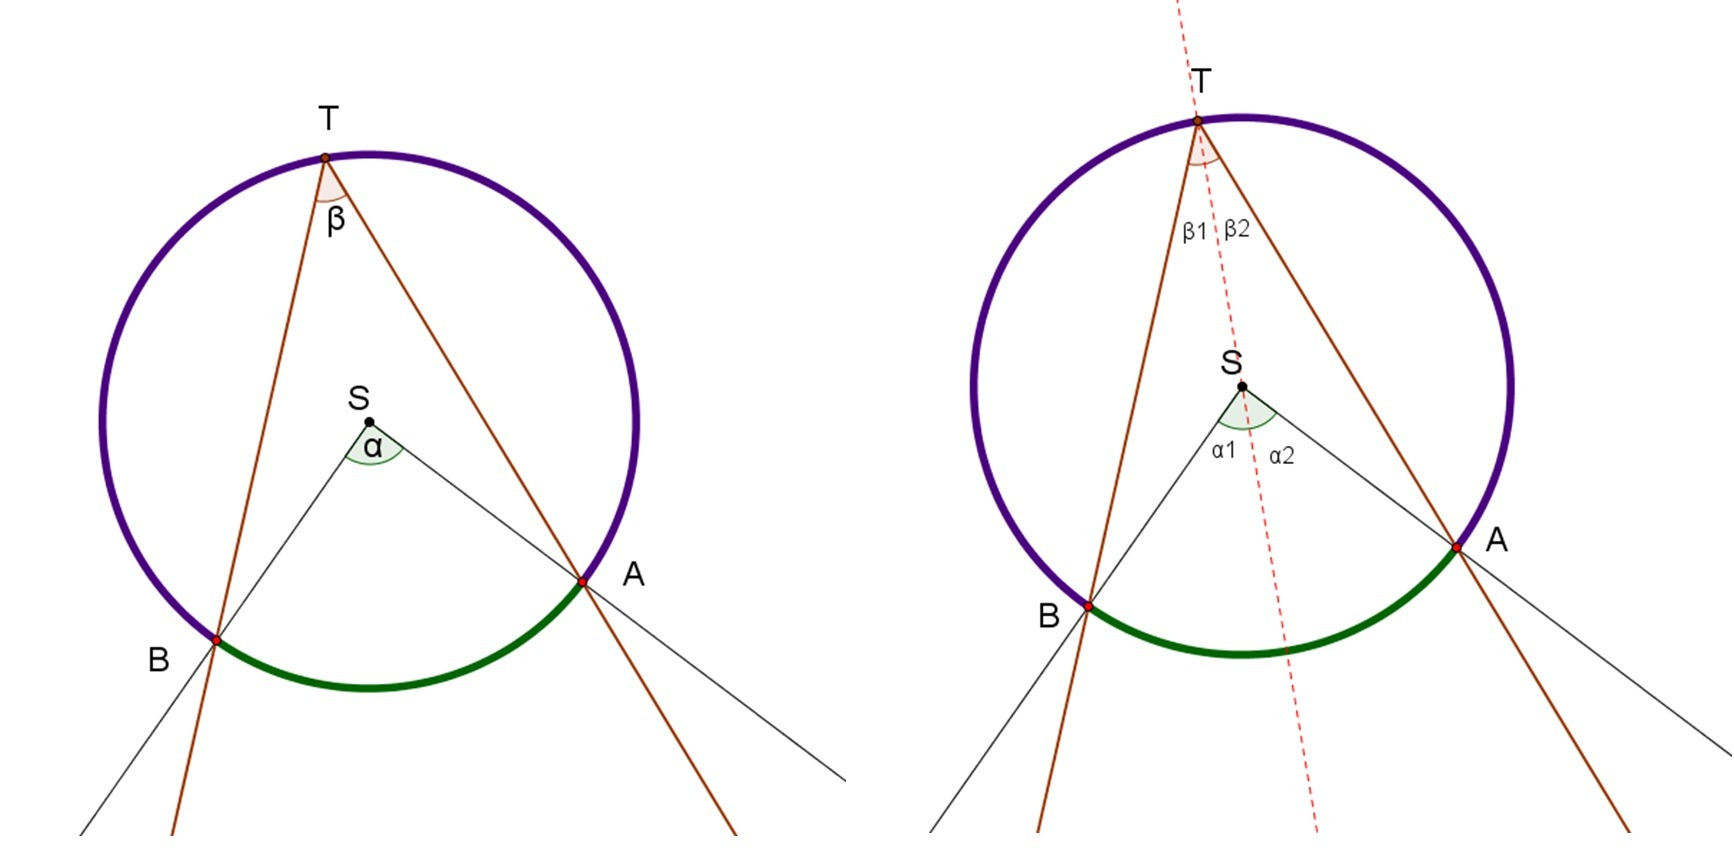 Center Lies Within Inscribed Angle